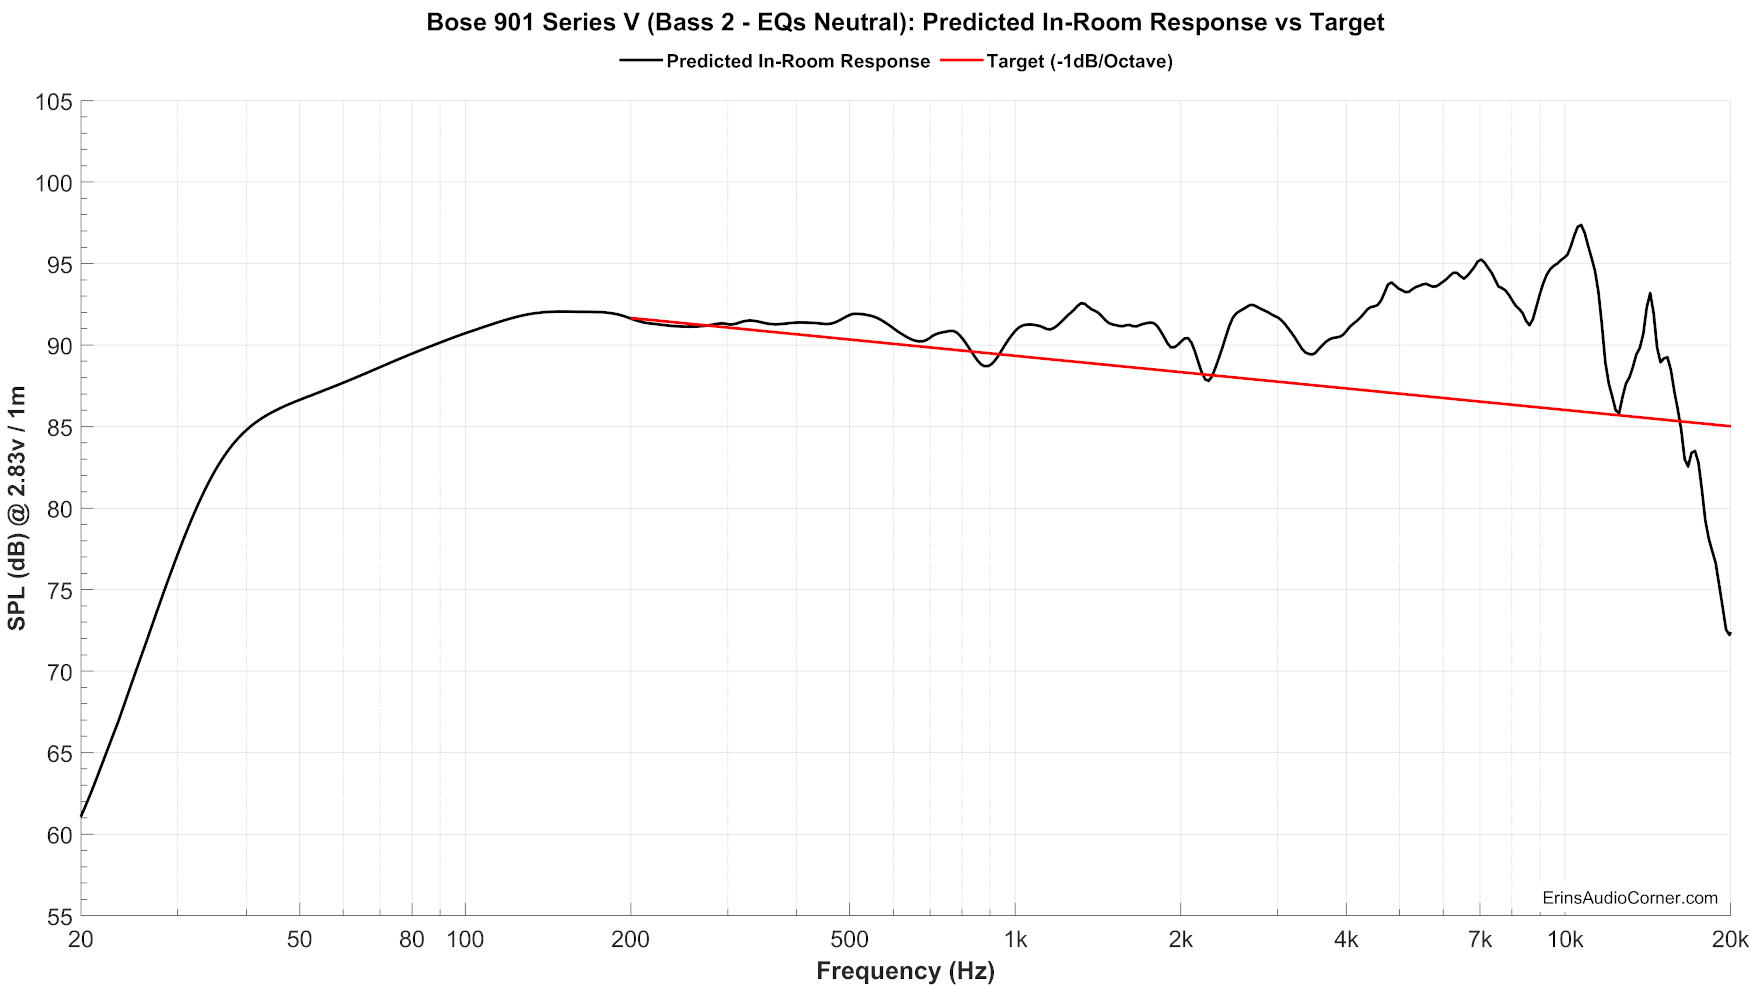 Bose%20901%20Series%20V%20(Bass%202%20-%20EQs%20Neutral)_Predicted_vs_Target.png